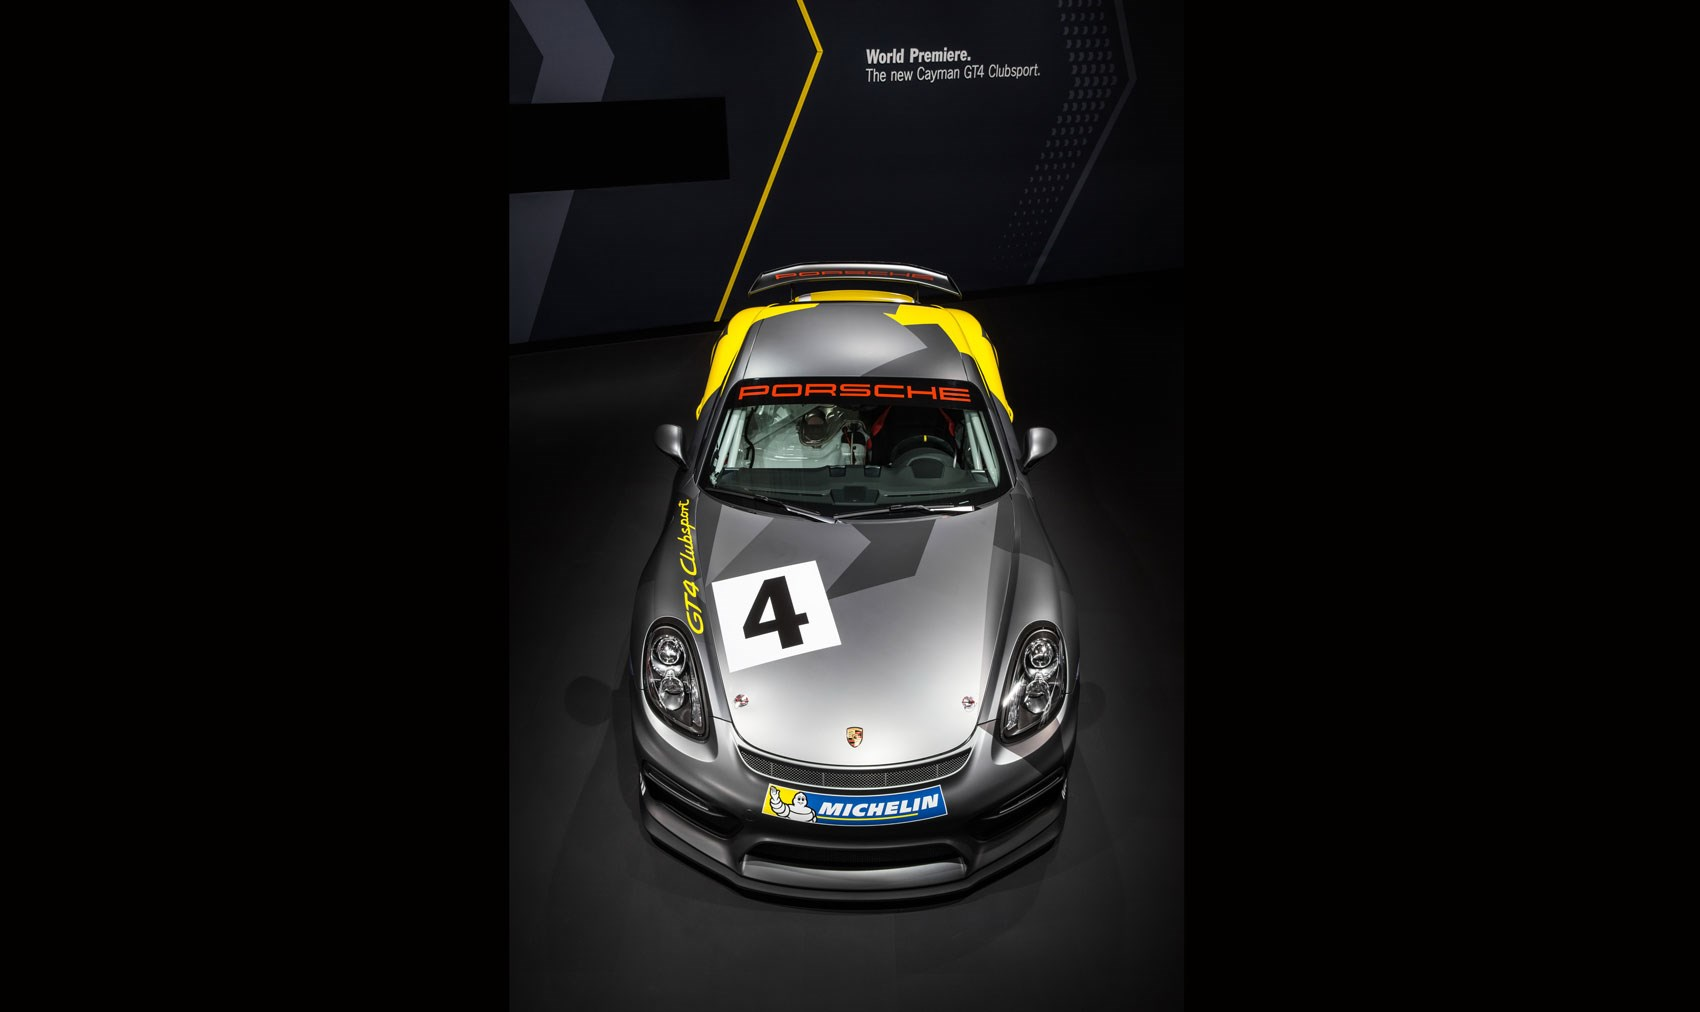 cayman_gt4_clubsport_9